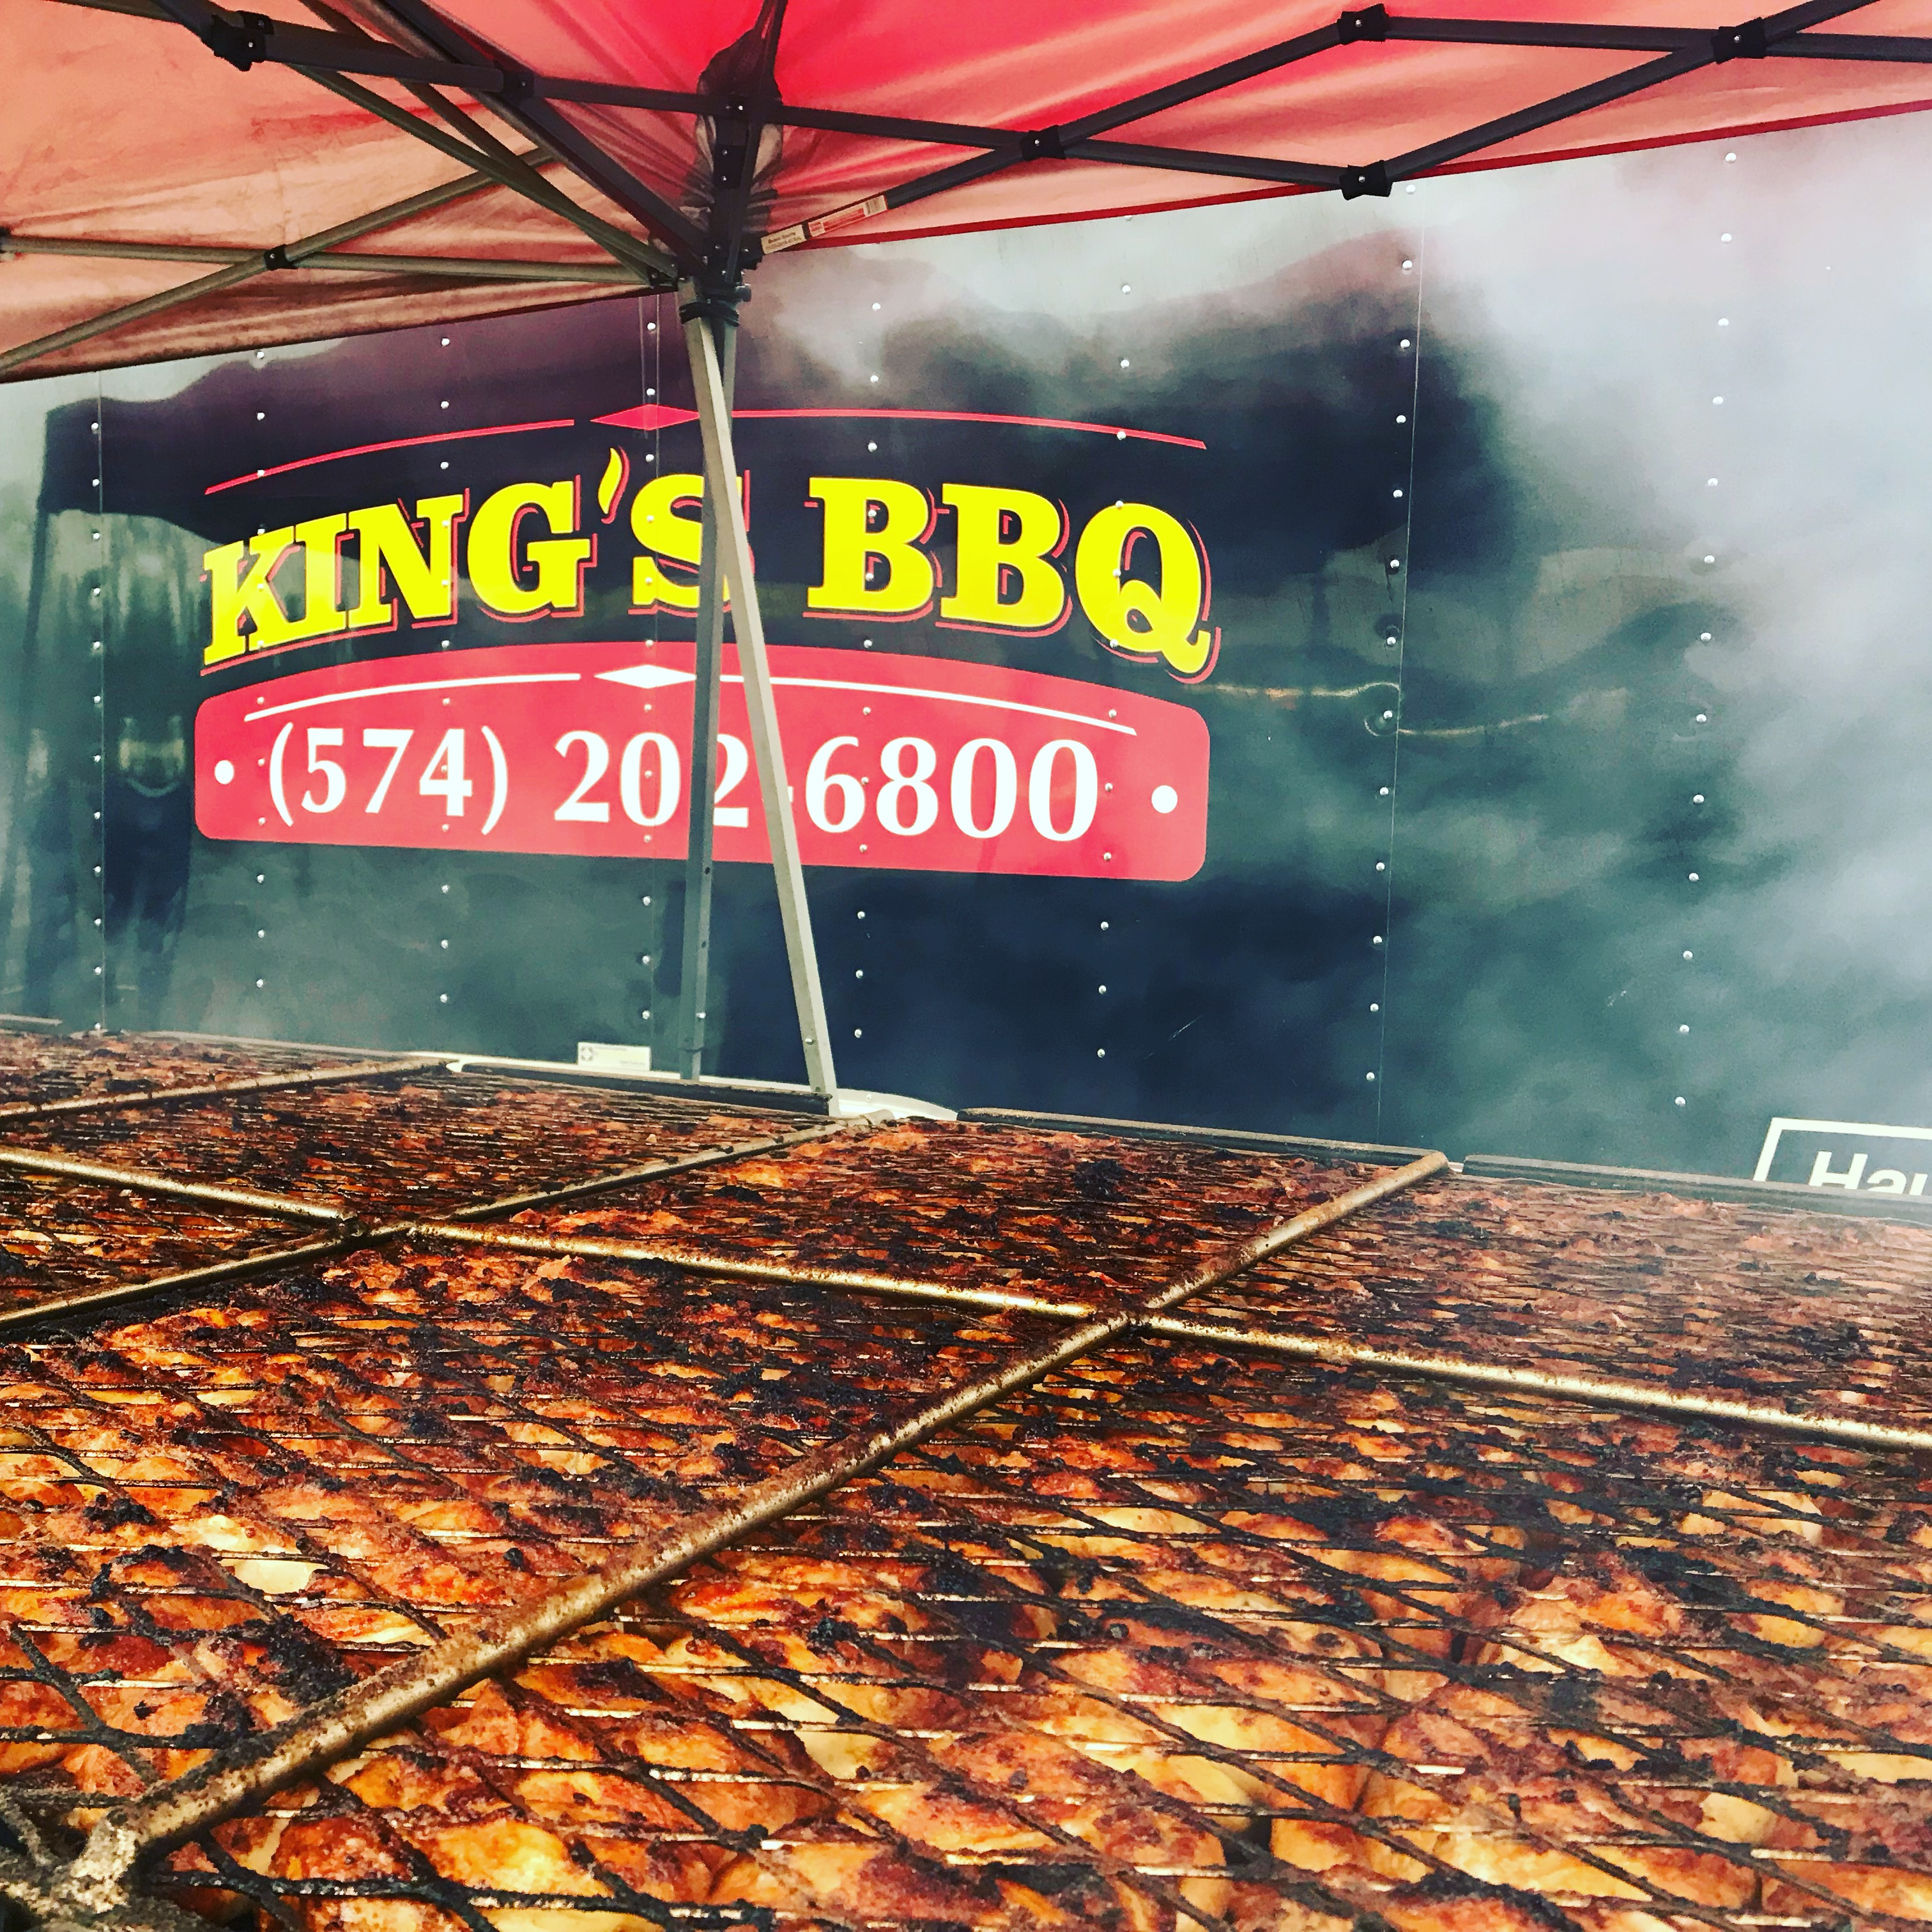 King's BBQ at a fundraiser